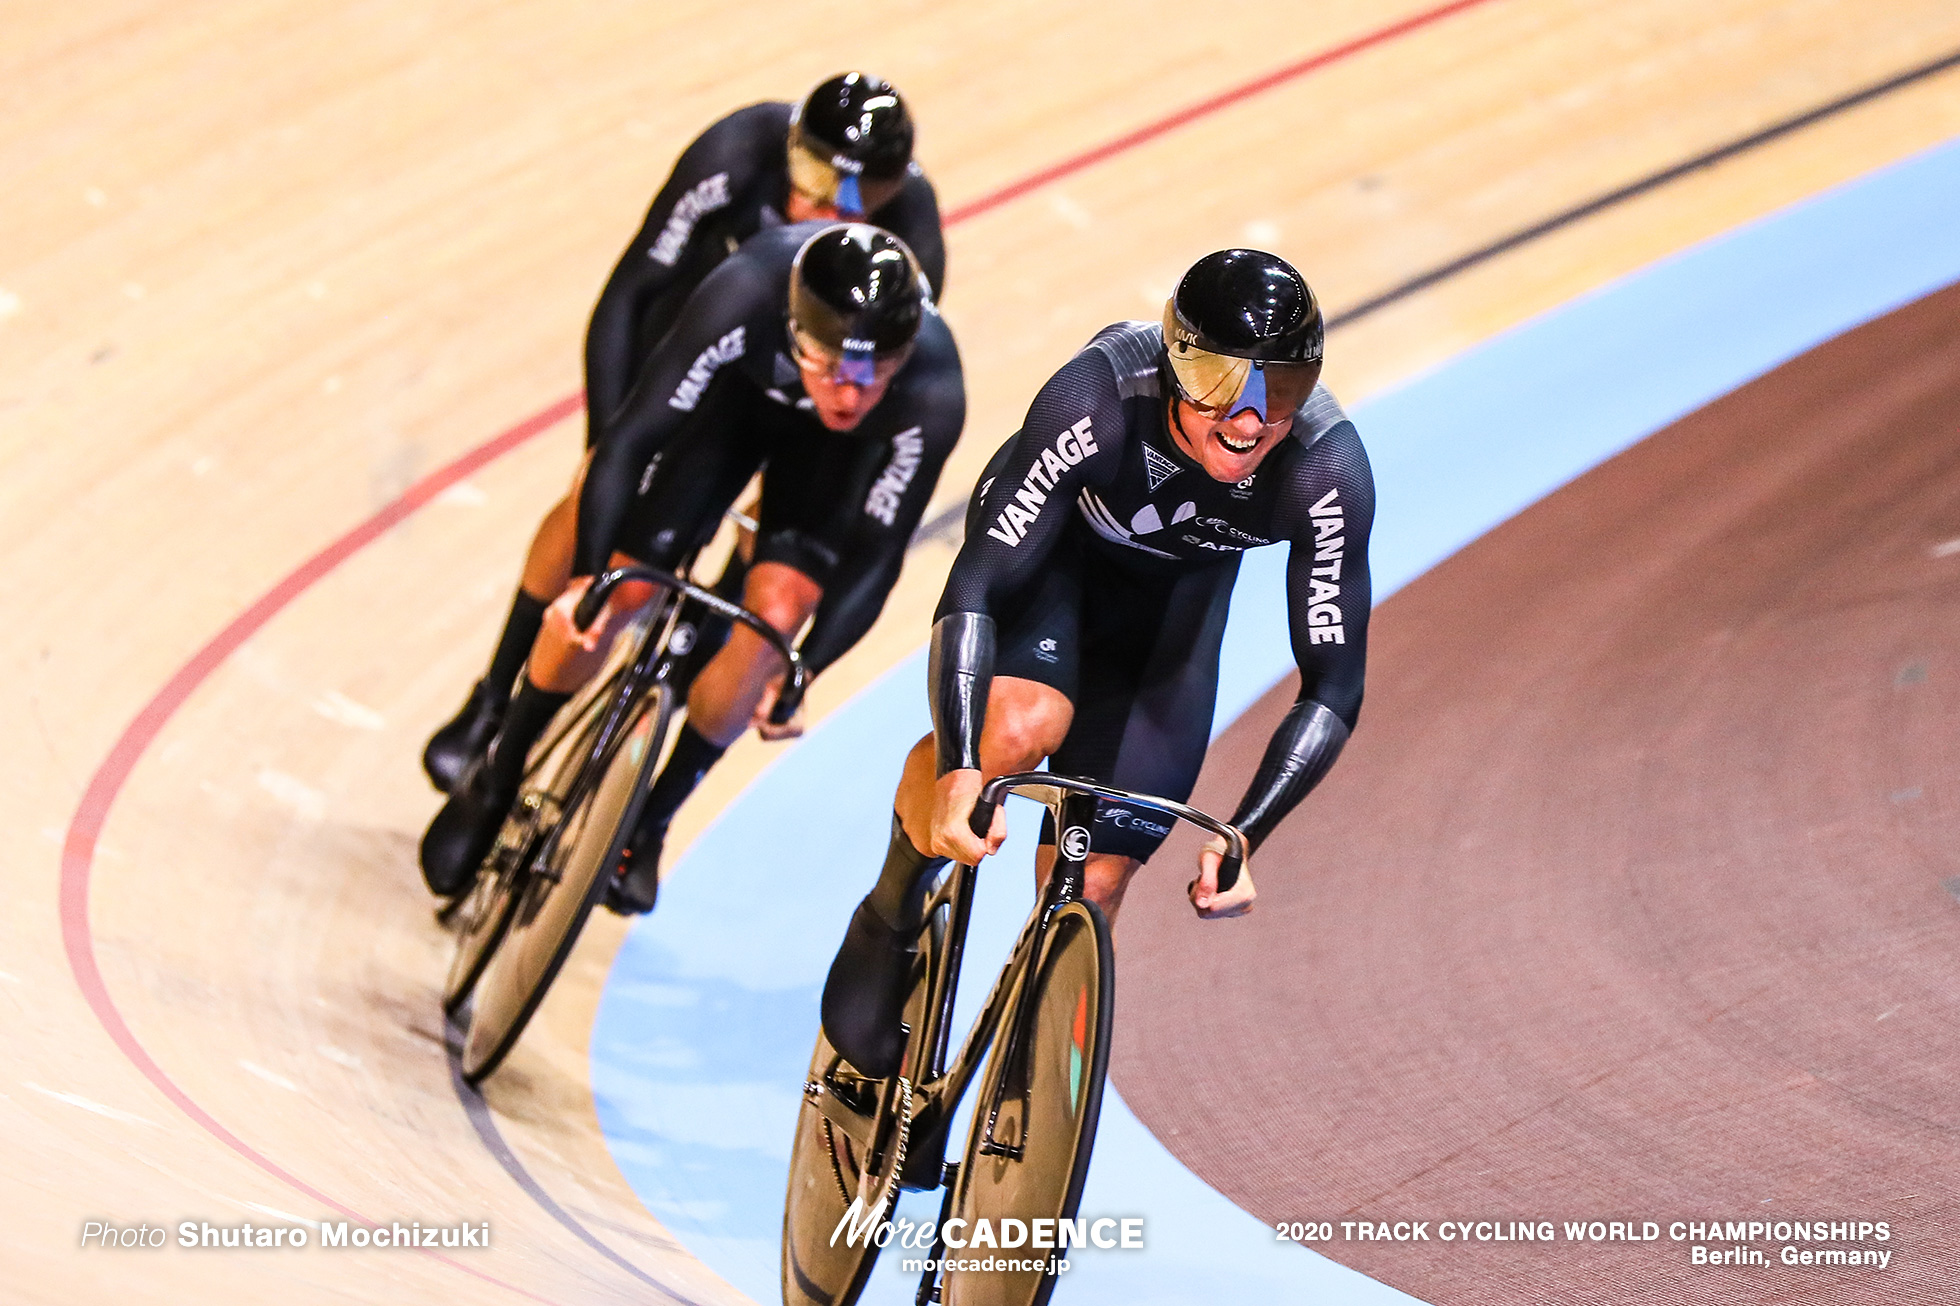 Qualifying / Men's Team Sprint / 2020 Track Cycling World Championships